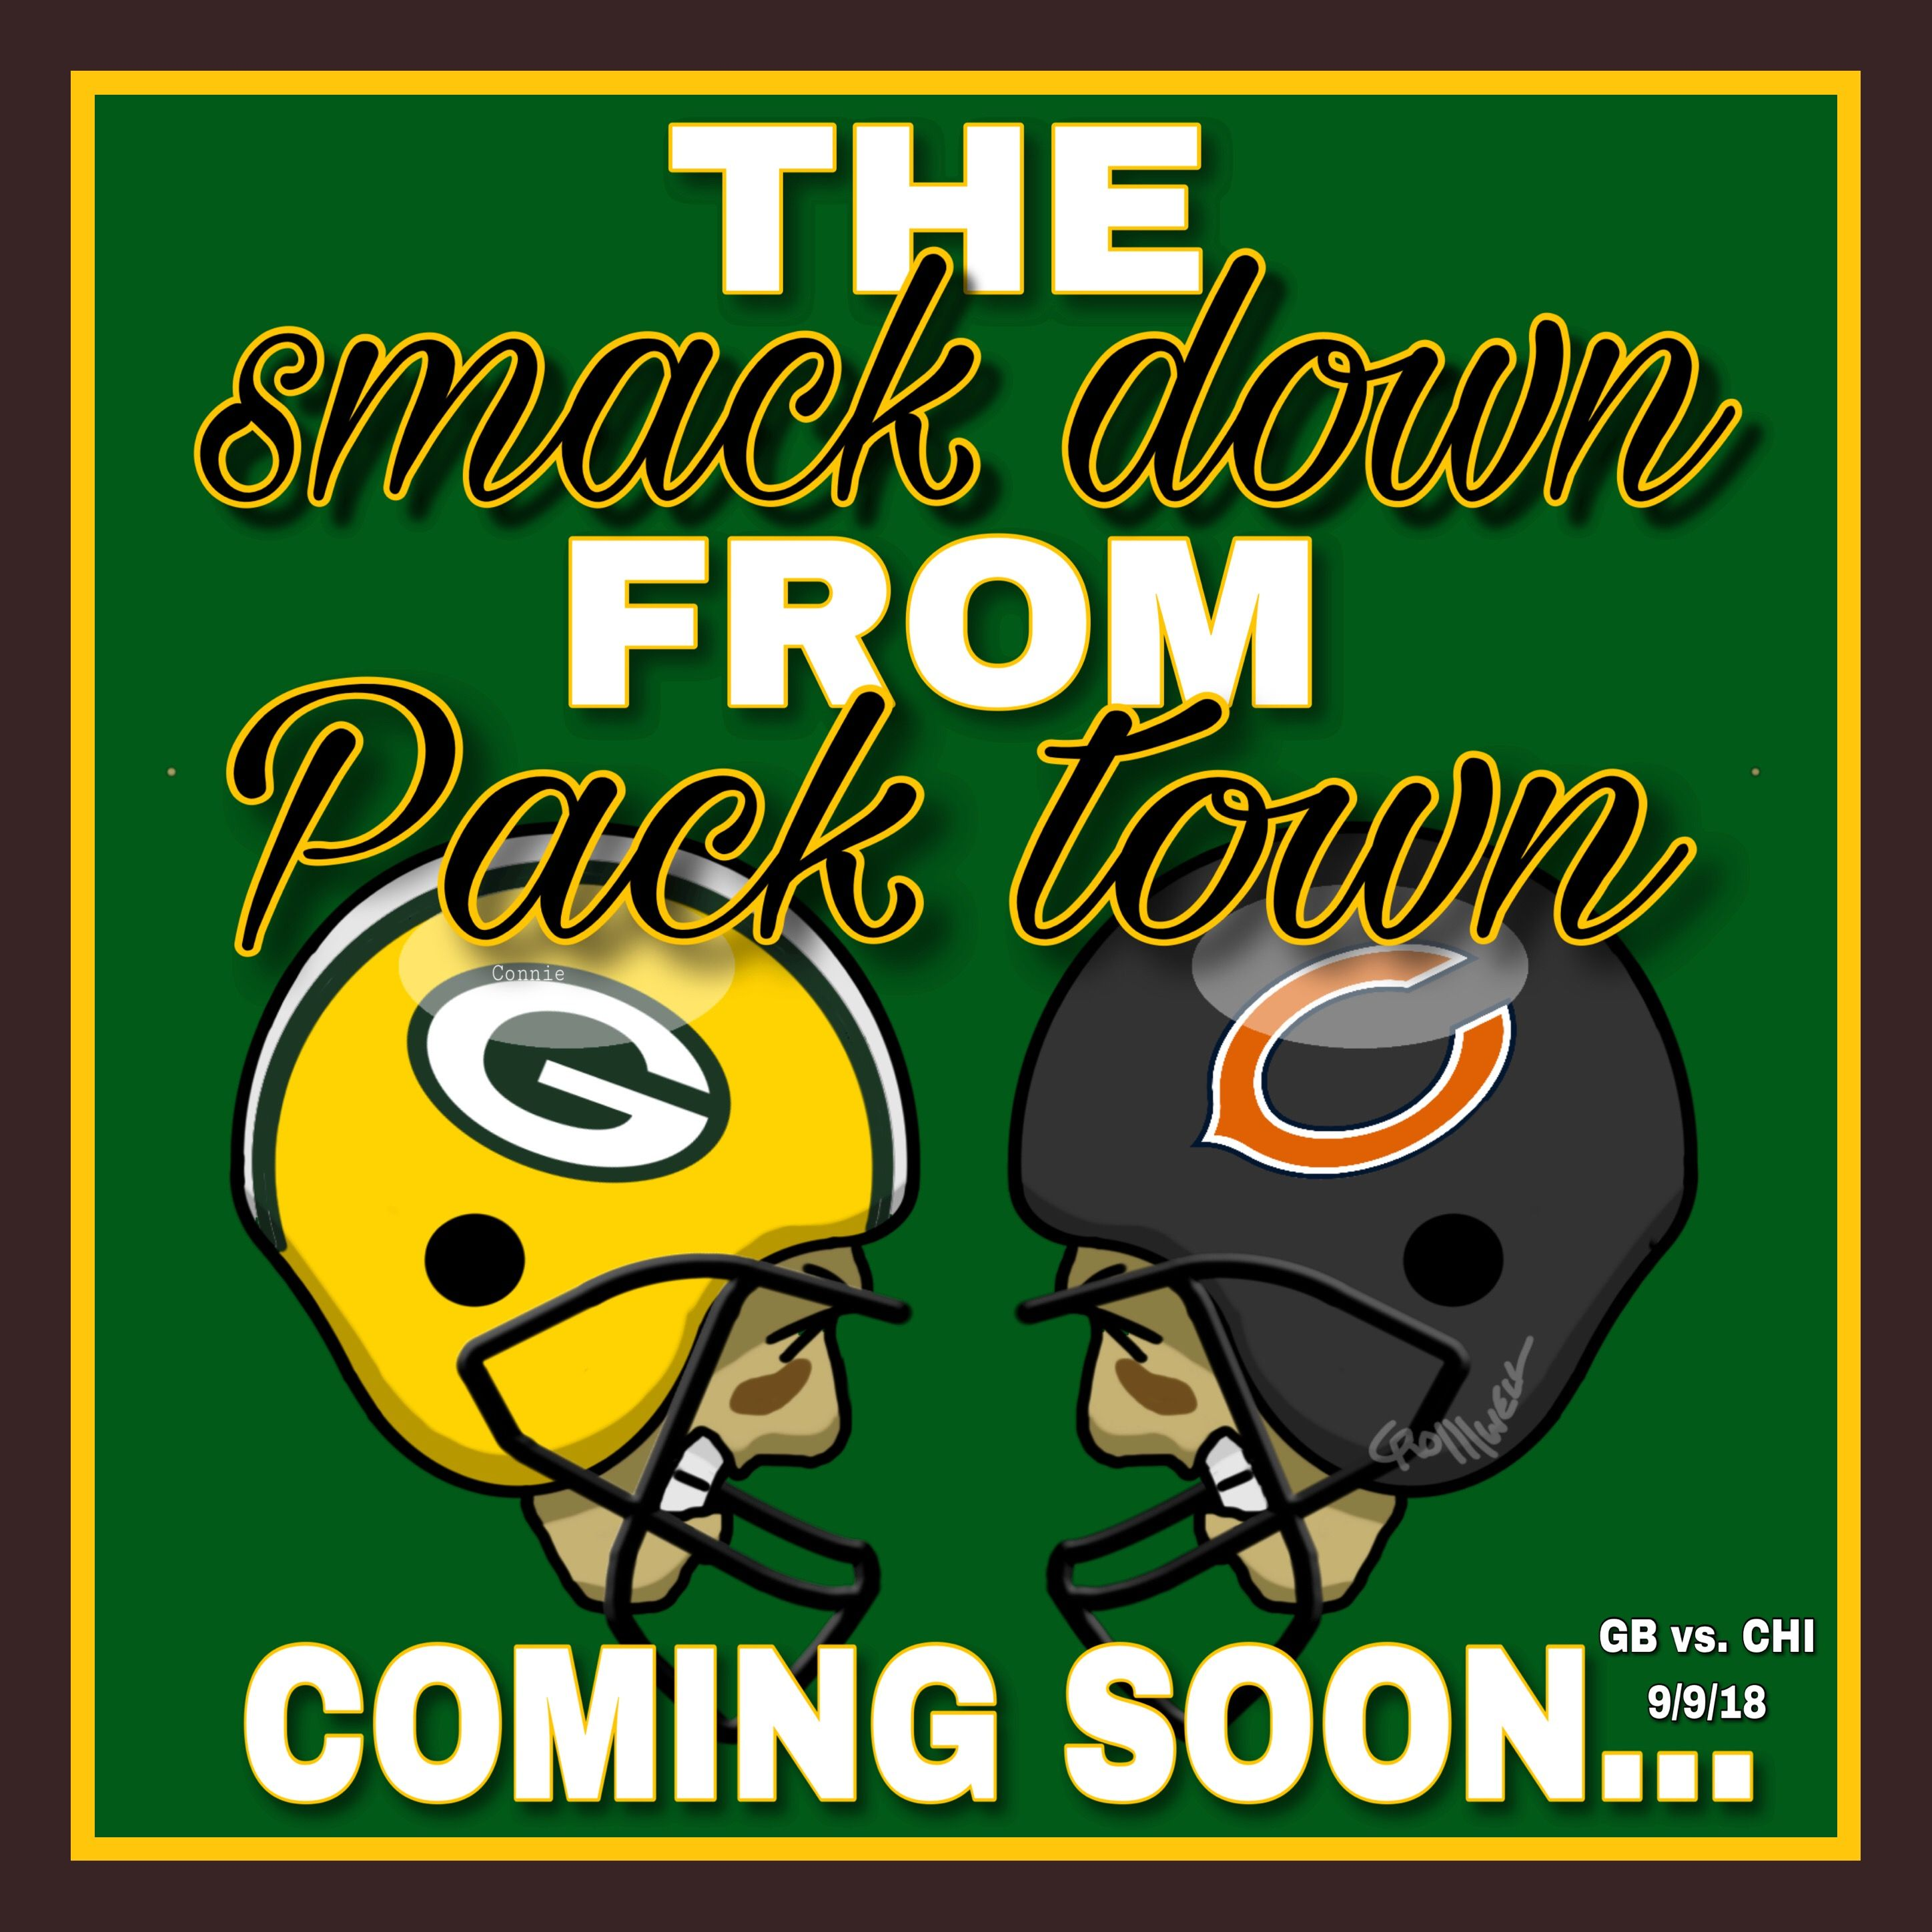 Home Opener Nomercy On Duh Bears Theysuck Green Bay Packers Logo Green Bay Packers Green Bay Packers Football